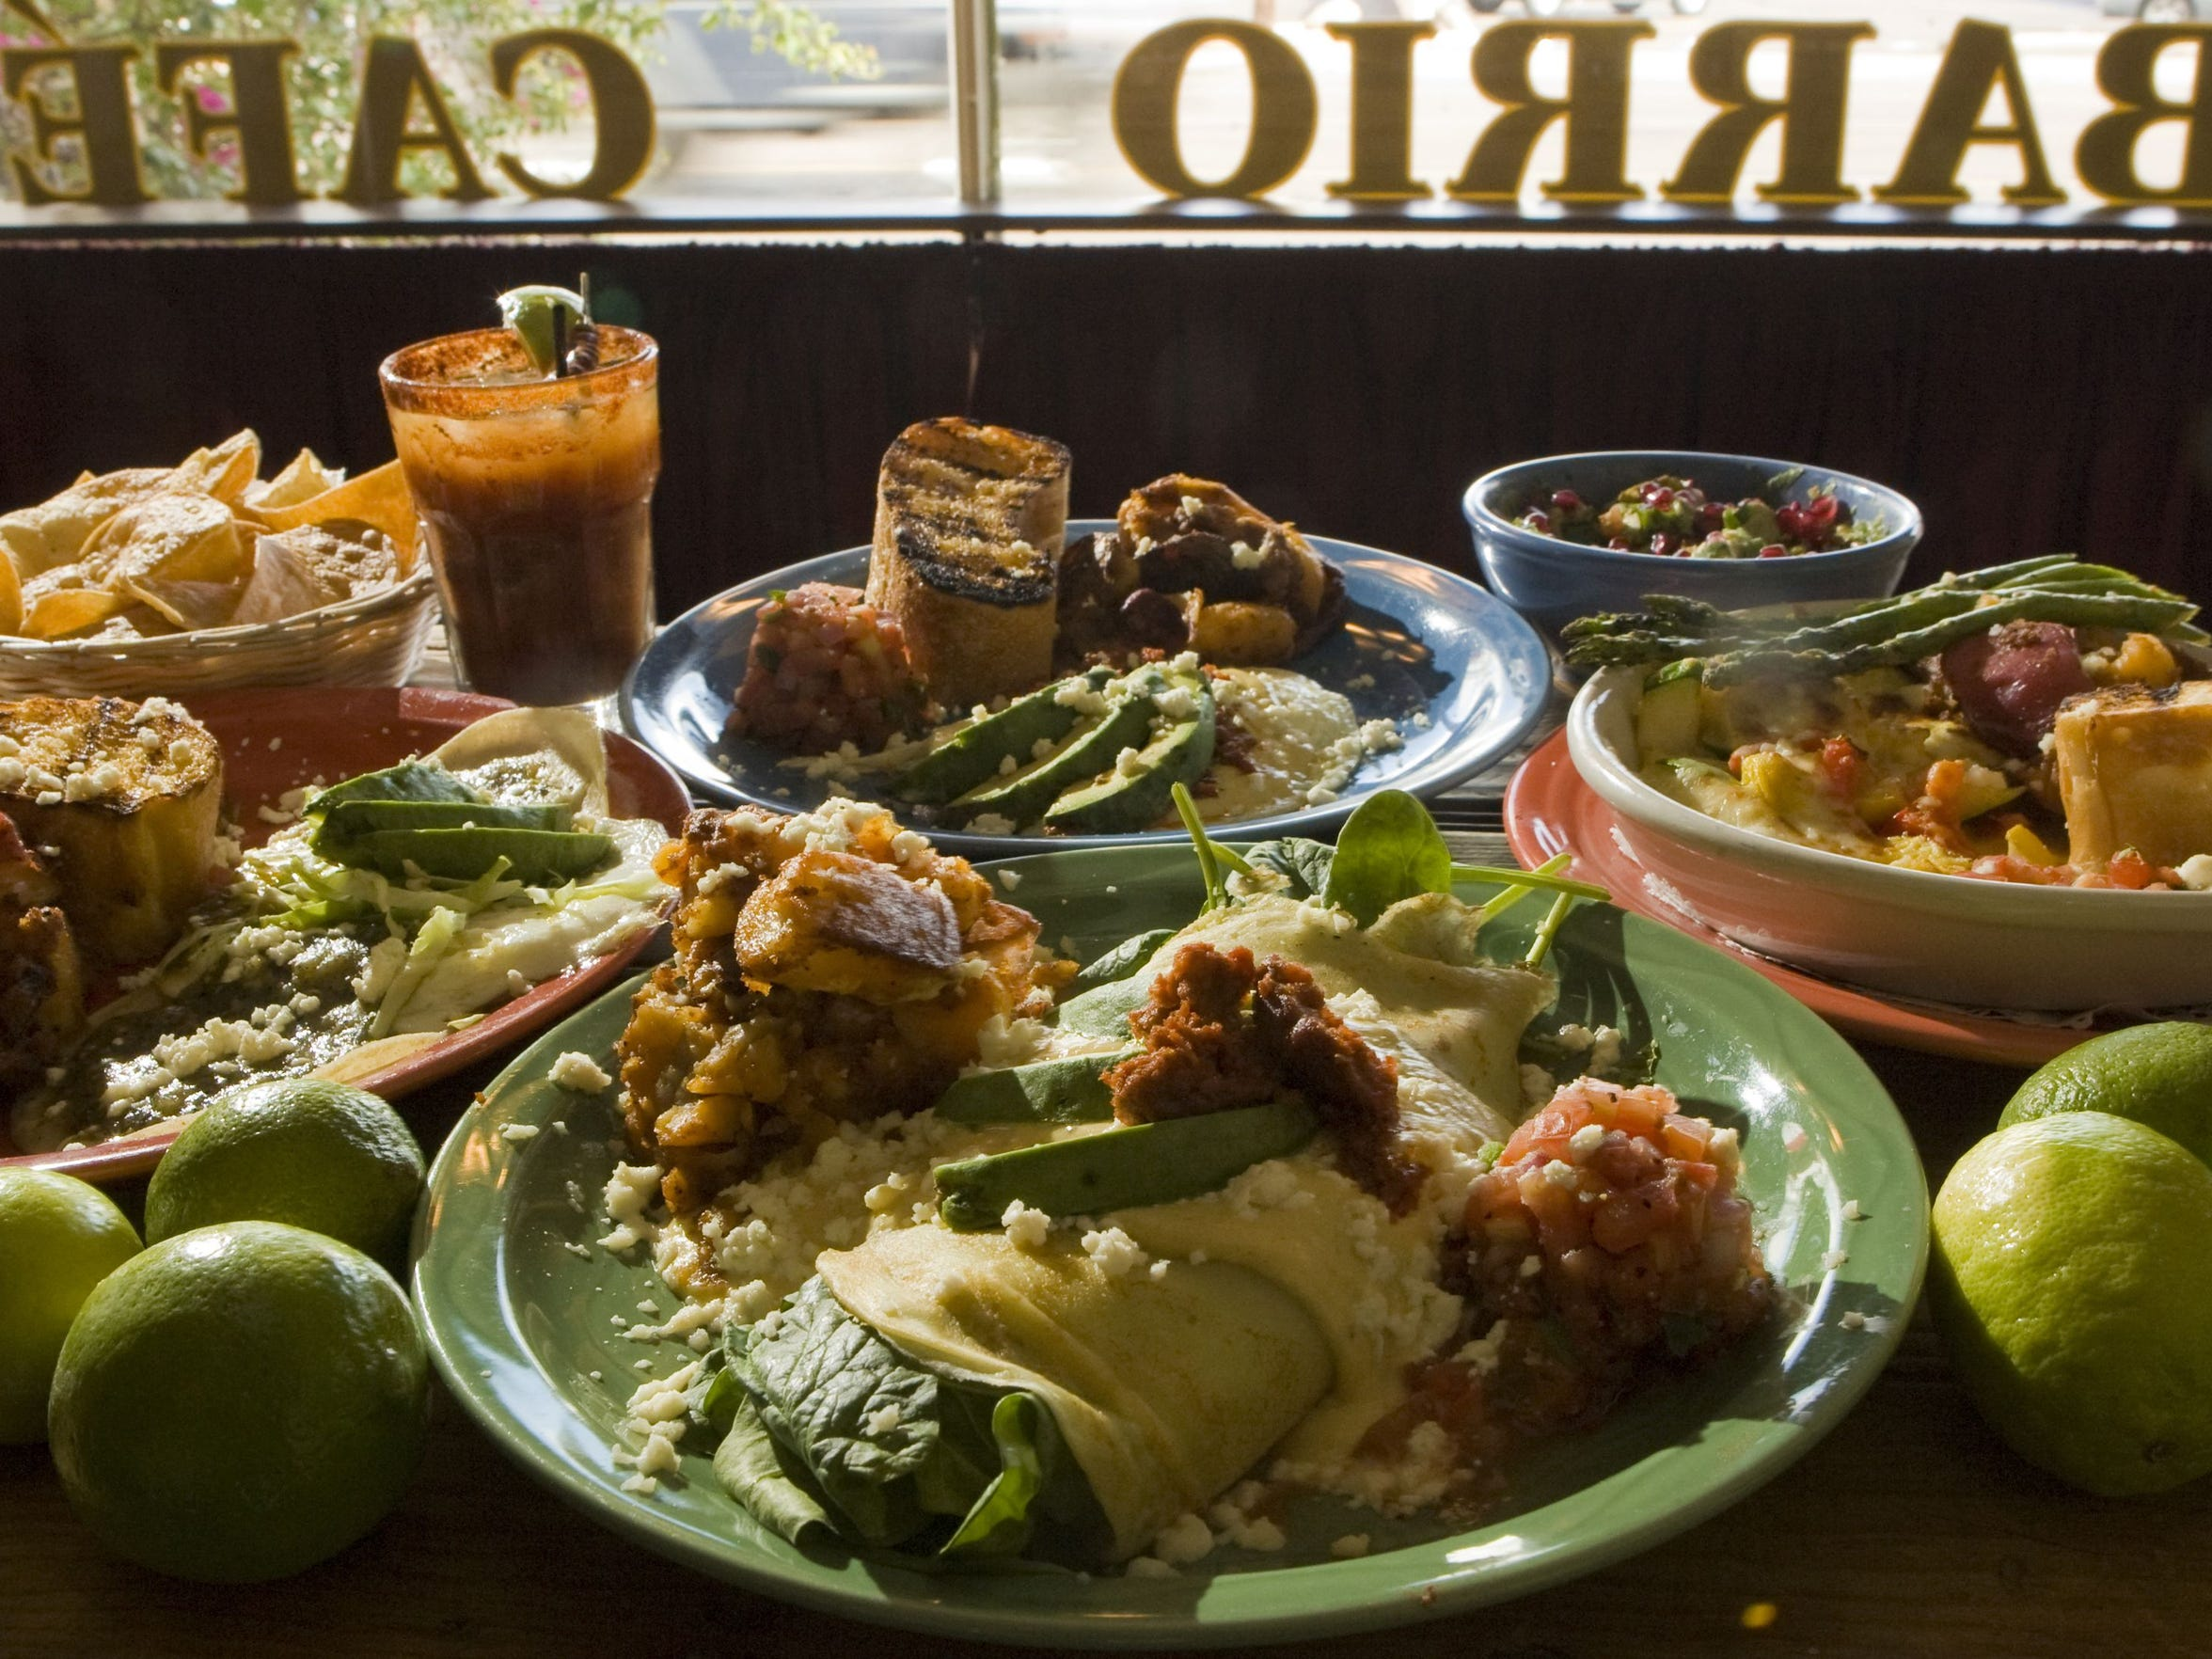 Chef Silvana Salcido Esparza's widely recognized Mexican restaurant Barrio Cafe is a first-stop meal for scores of international visitors.